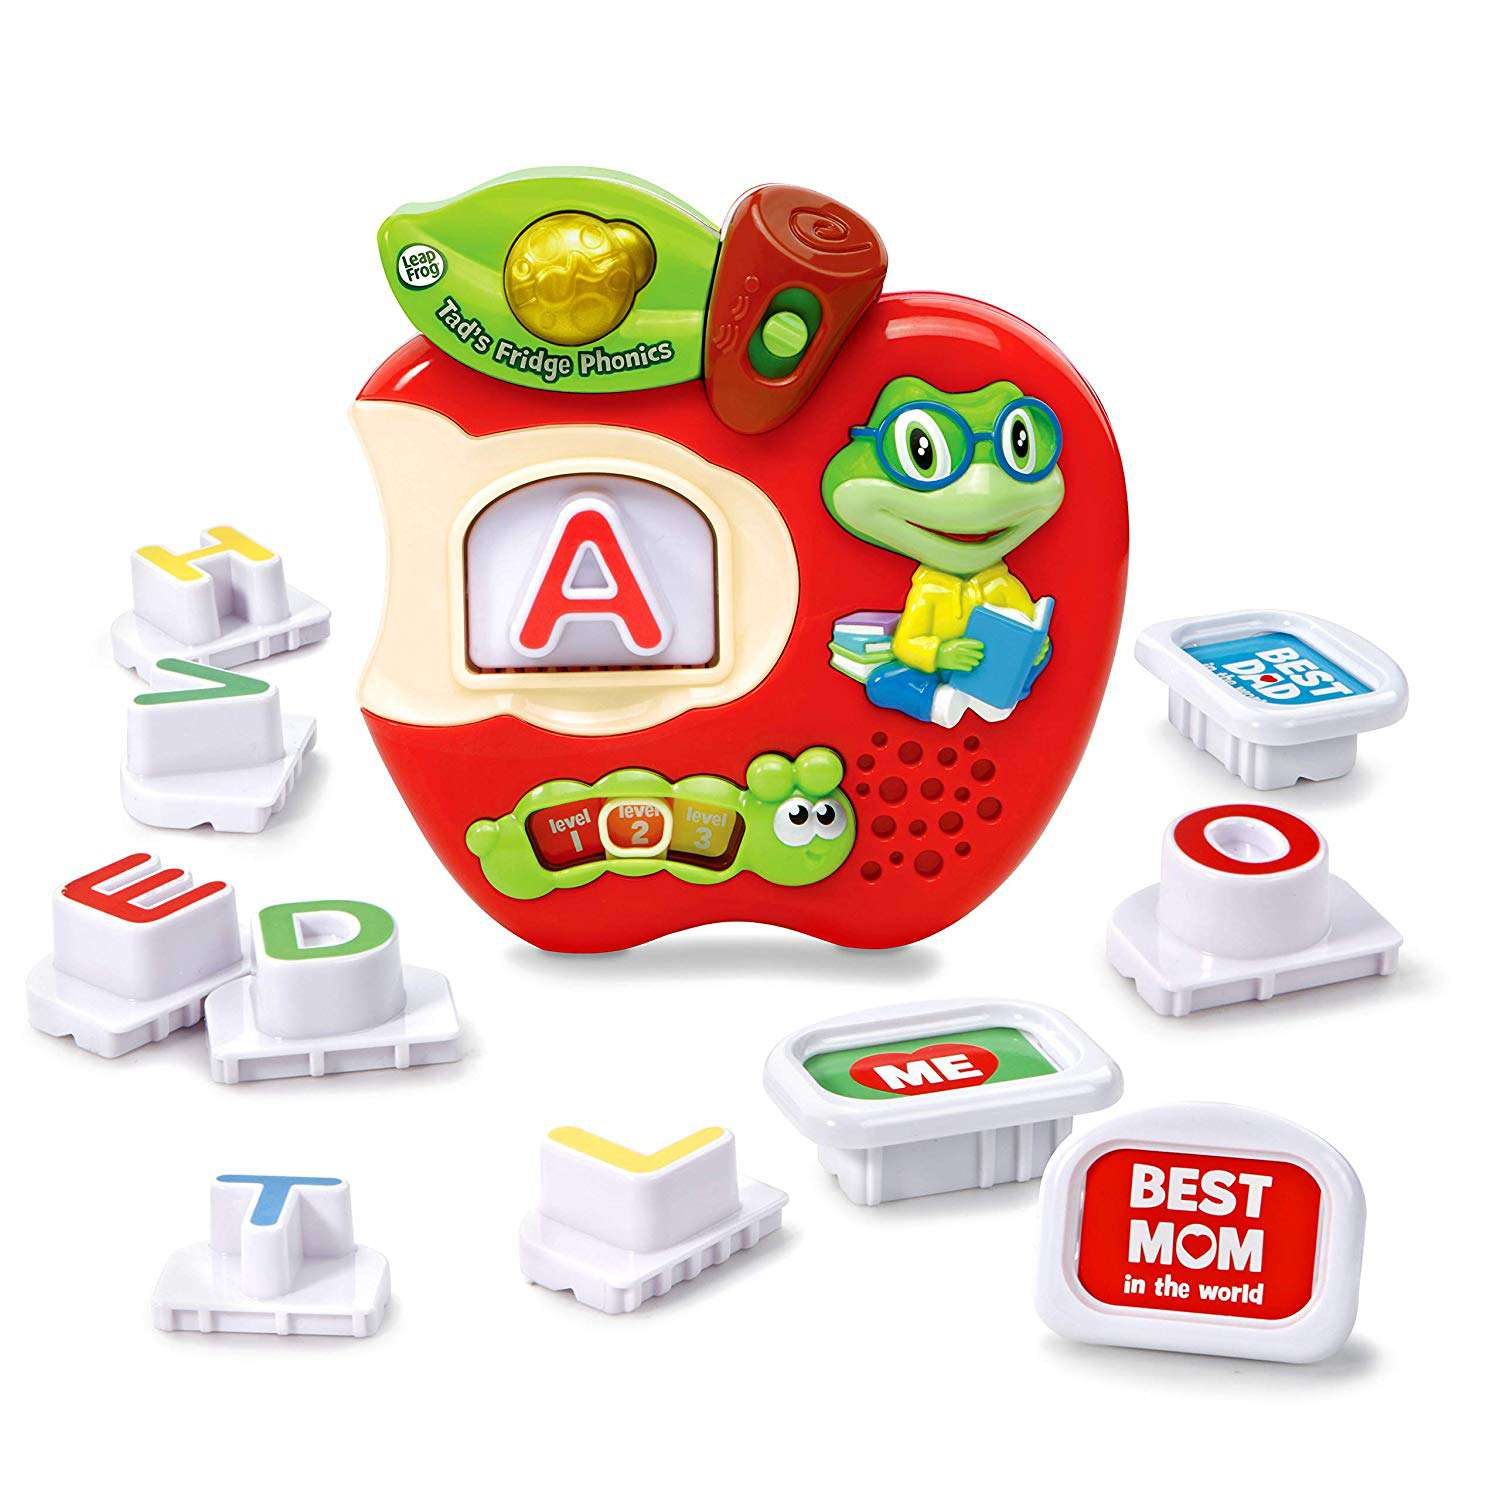 Words and Objects Number and Color Recognition 2 in1 Spelling Games Alphabet Reading and Spelling Counting Matching Letter Game /& Number Games for Kids Preschool Learning Toys for Kids Toddler